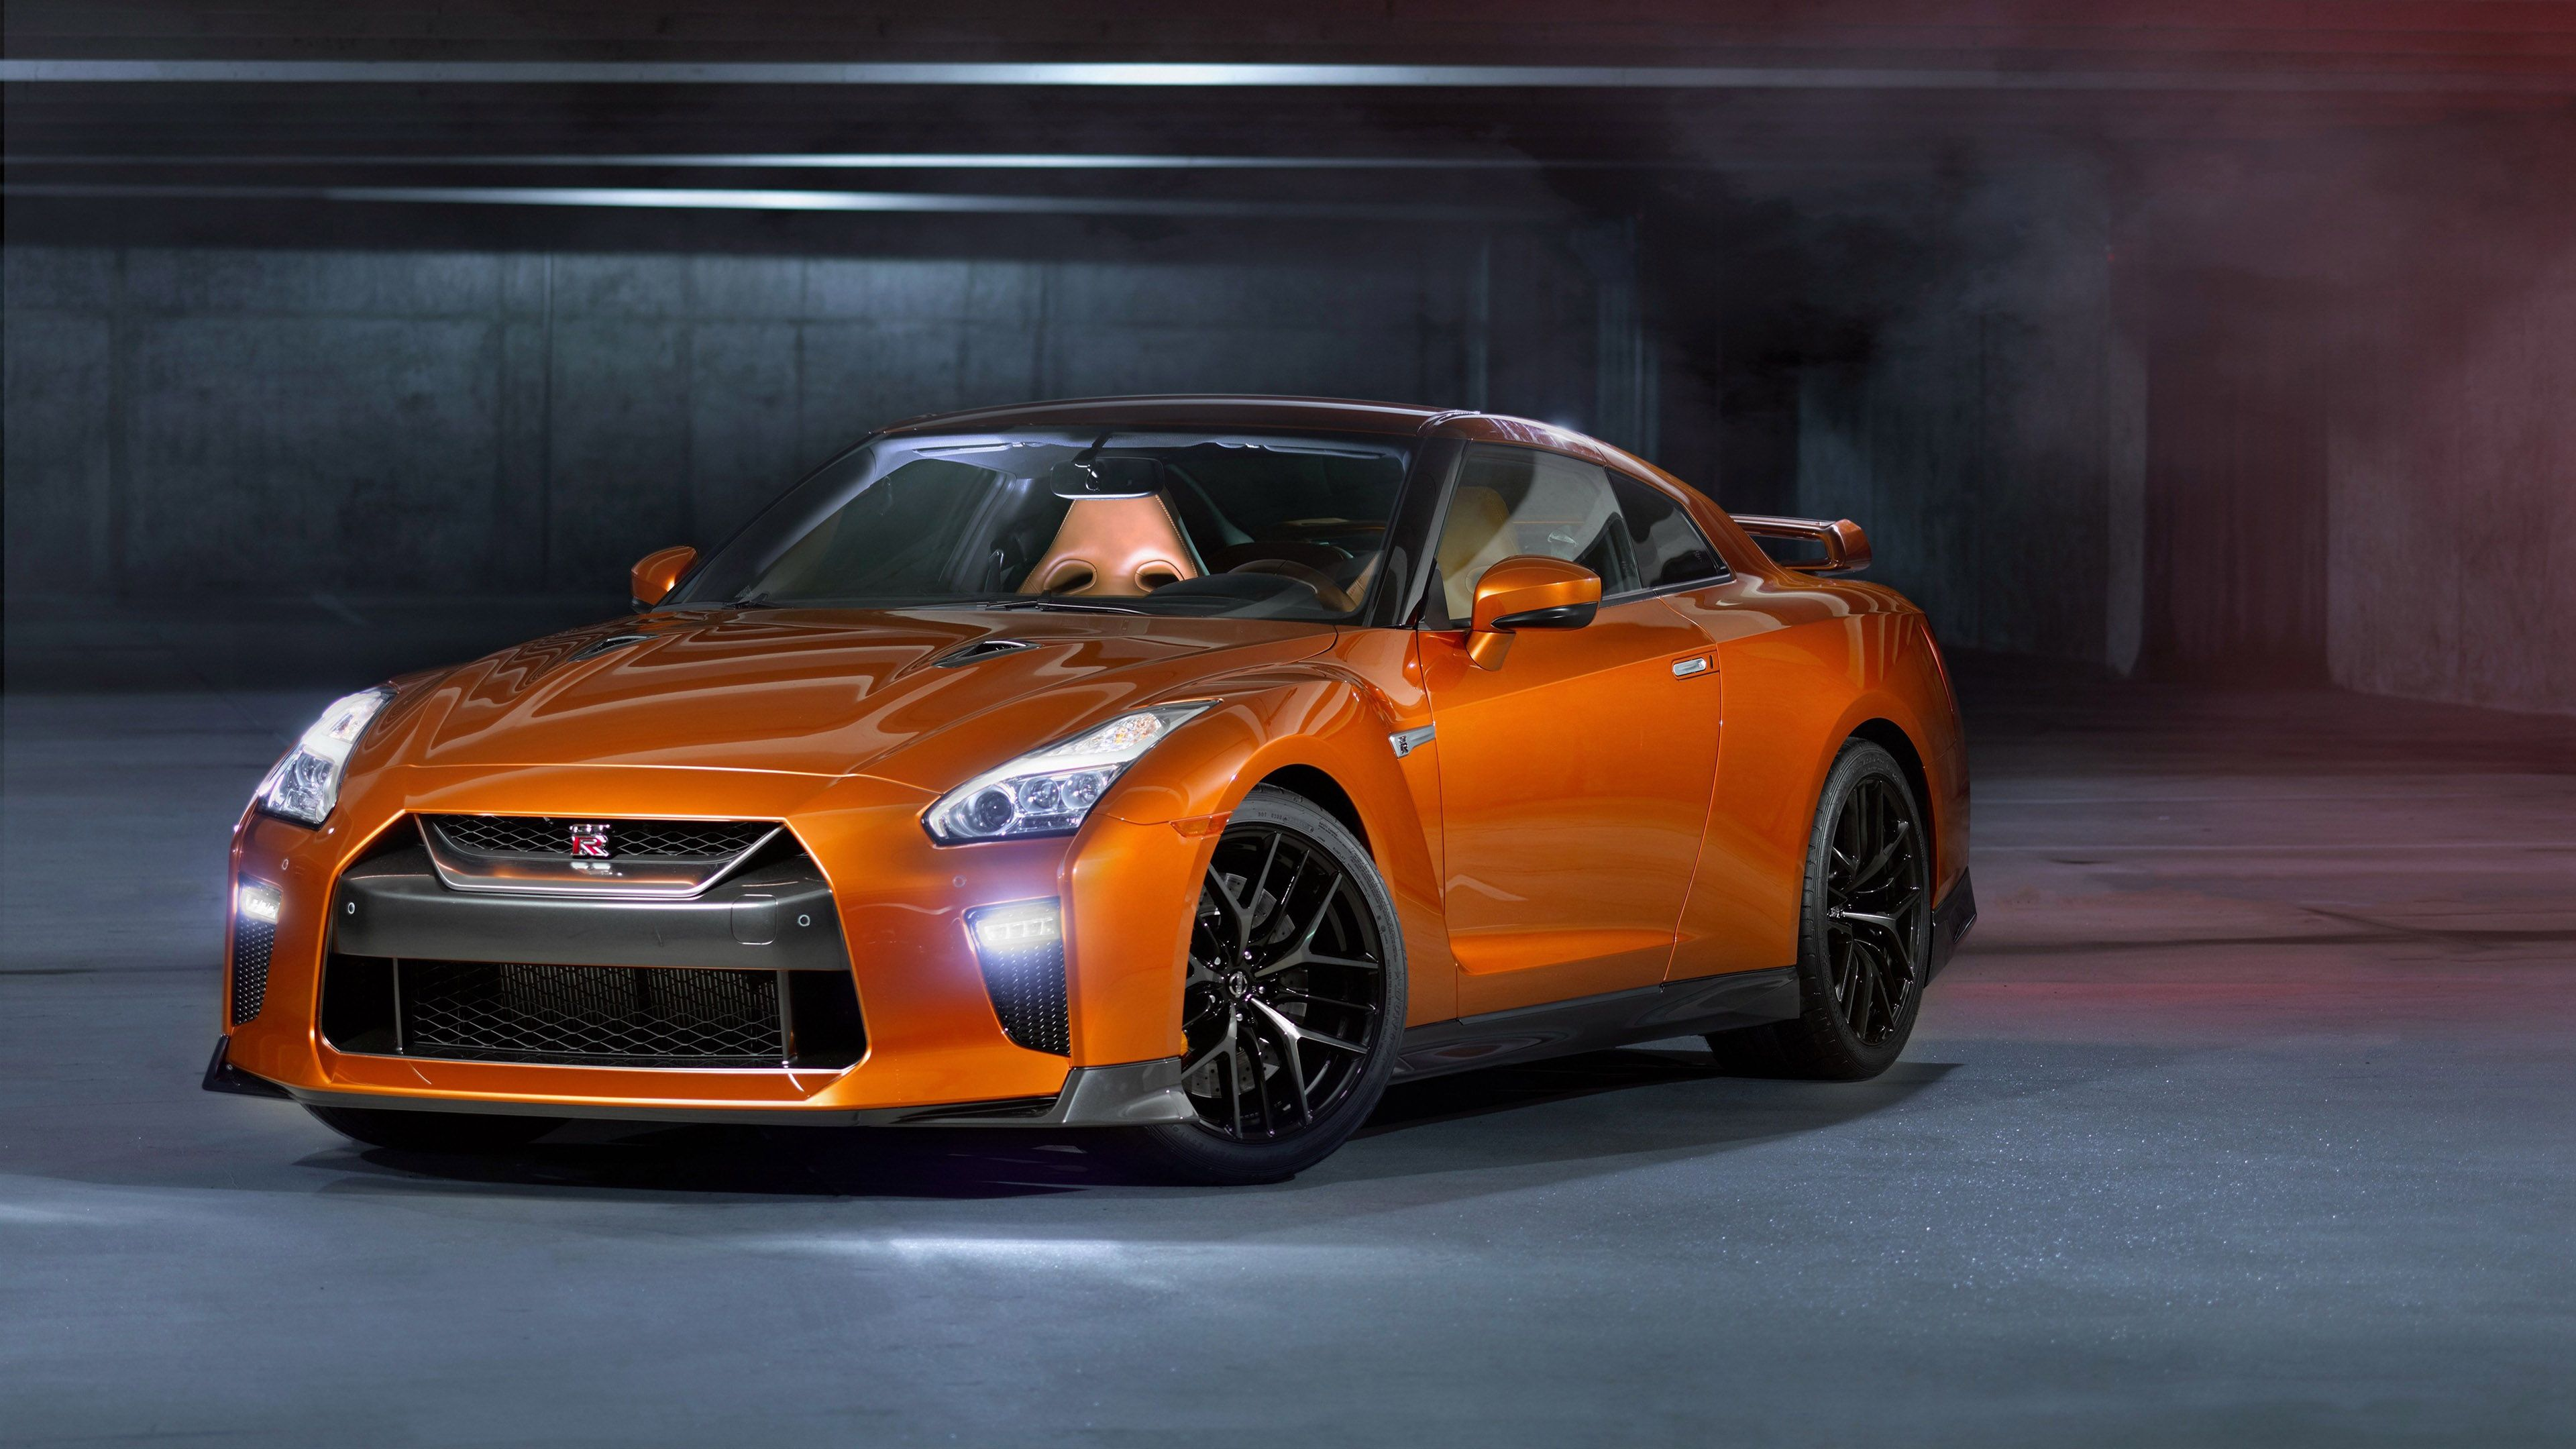 Gtr Sports Car Wallpapers Top Free Gtr Sports Car Backgrounds